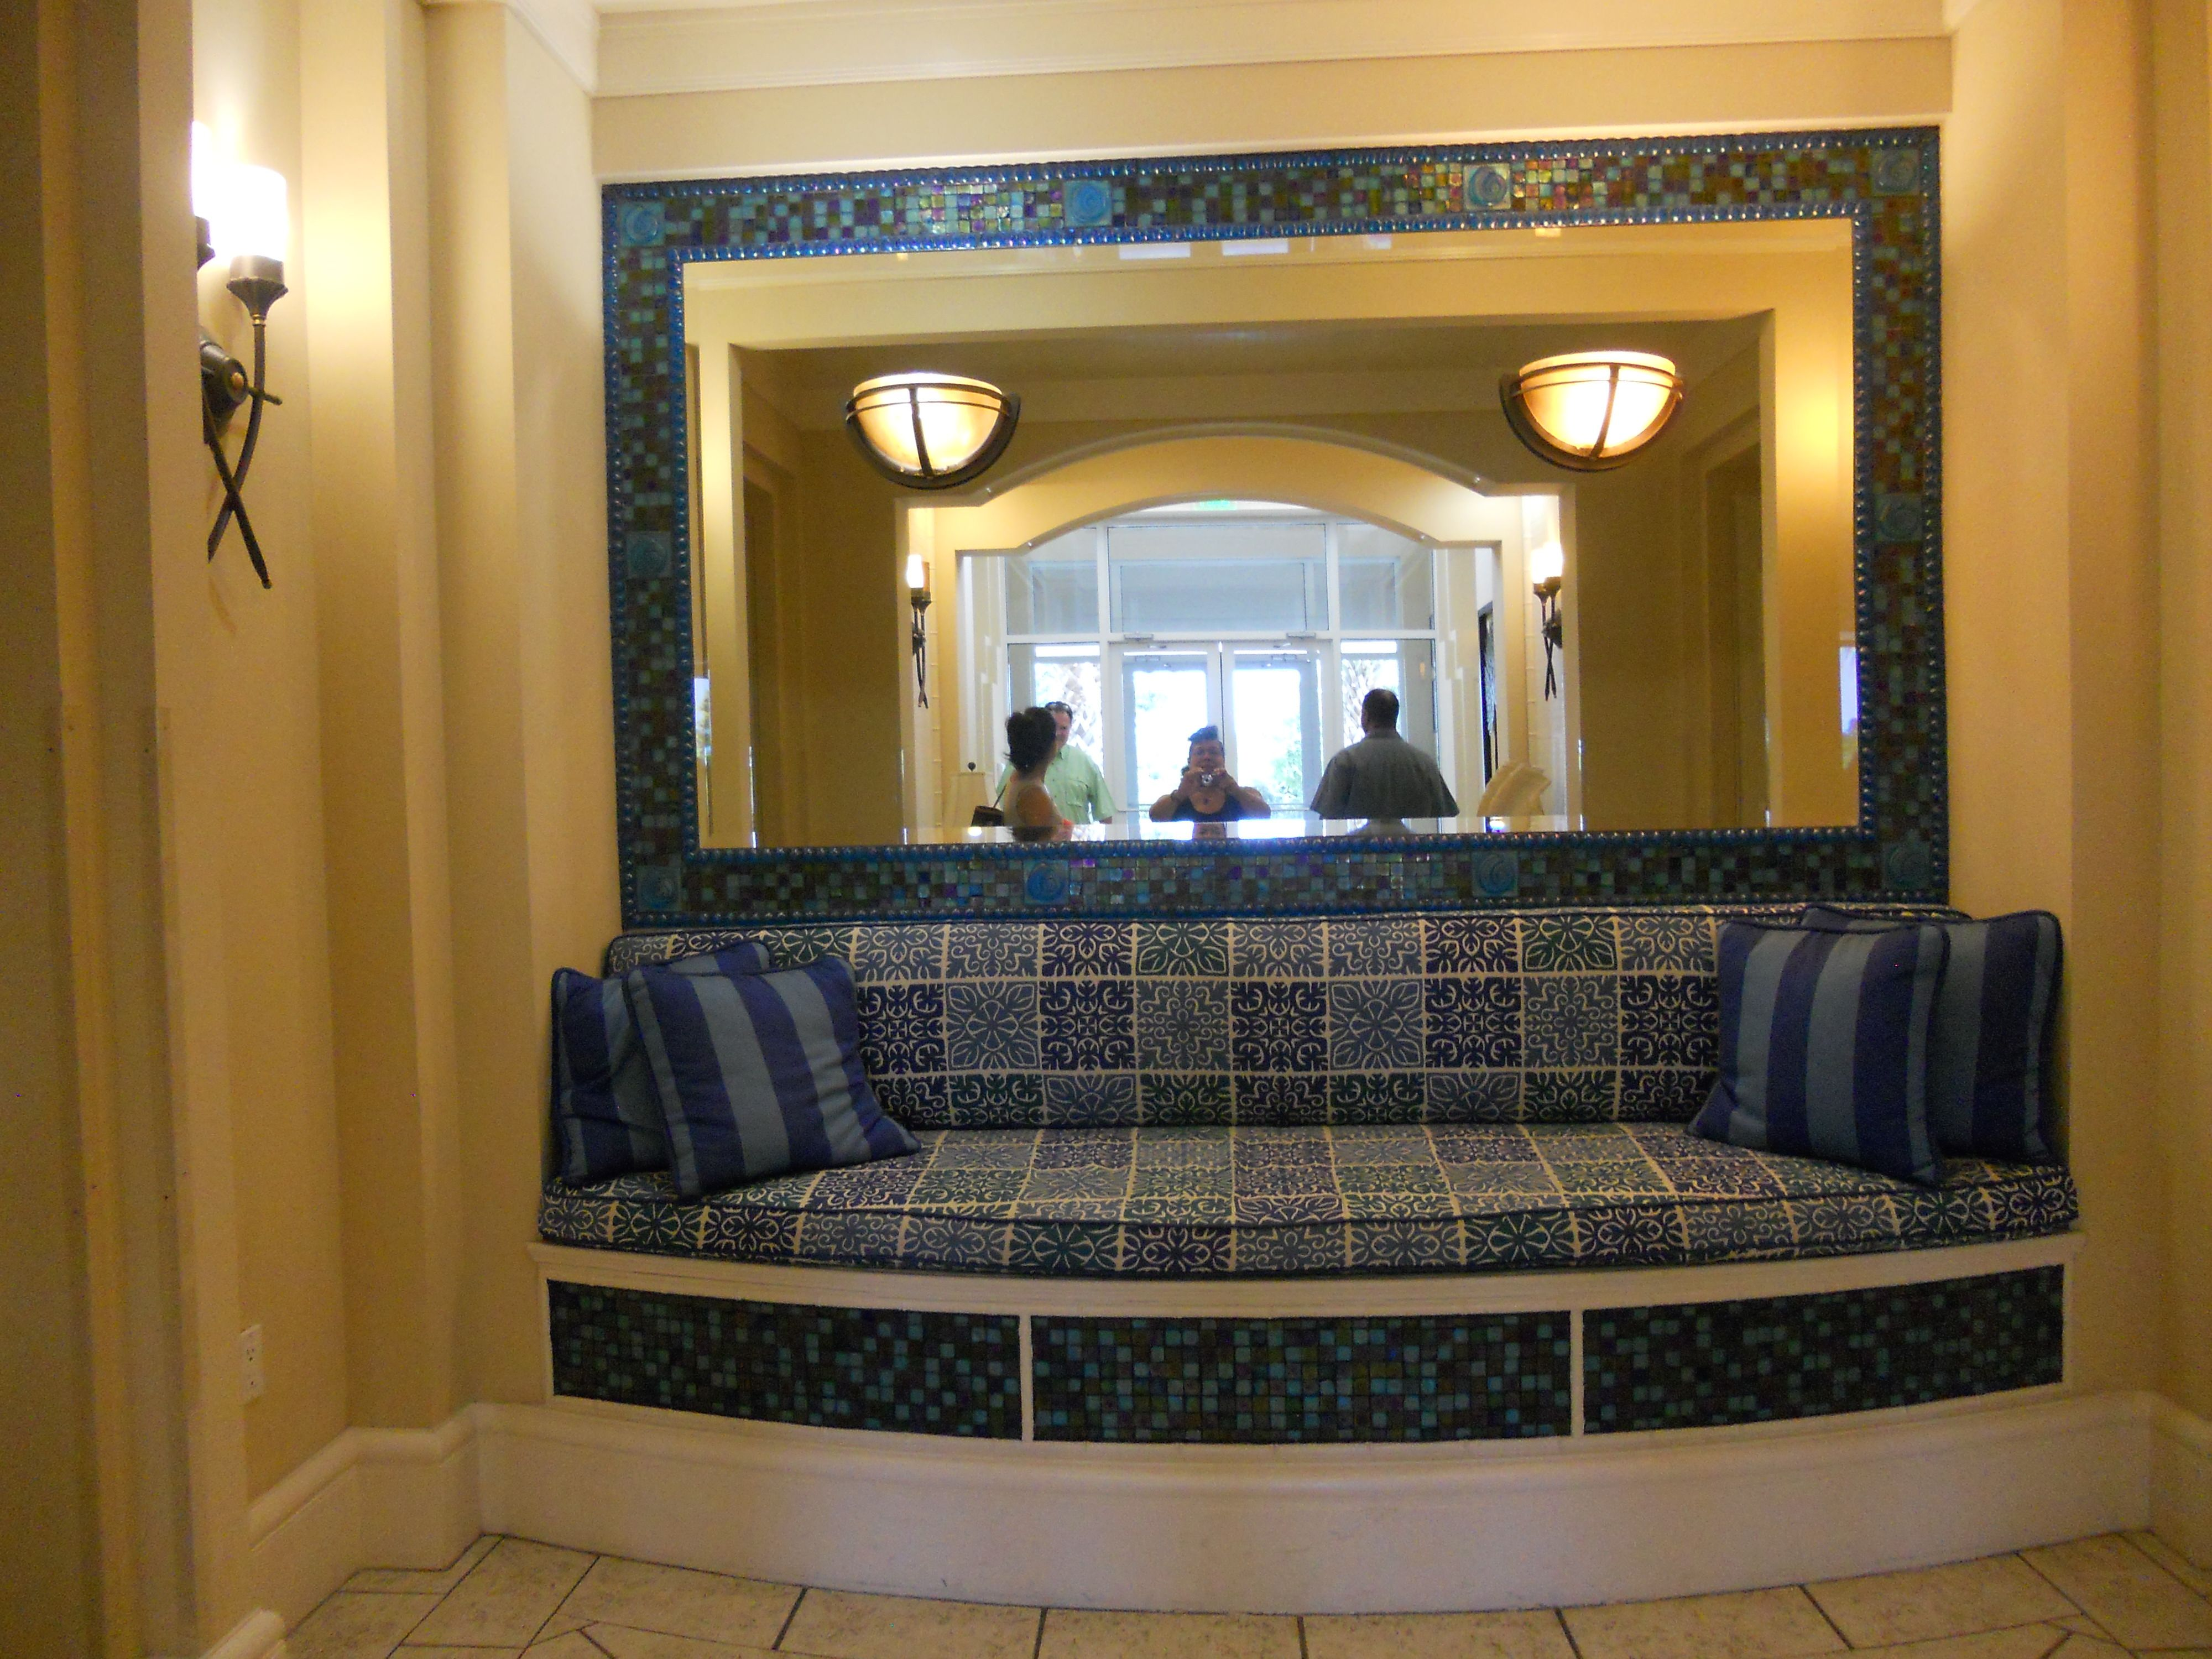 Great indoor porch benches or lobby seating areas. Great use of tiles